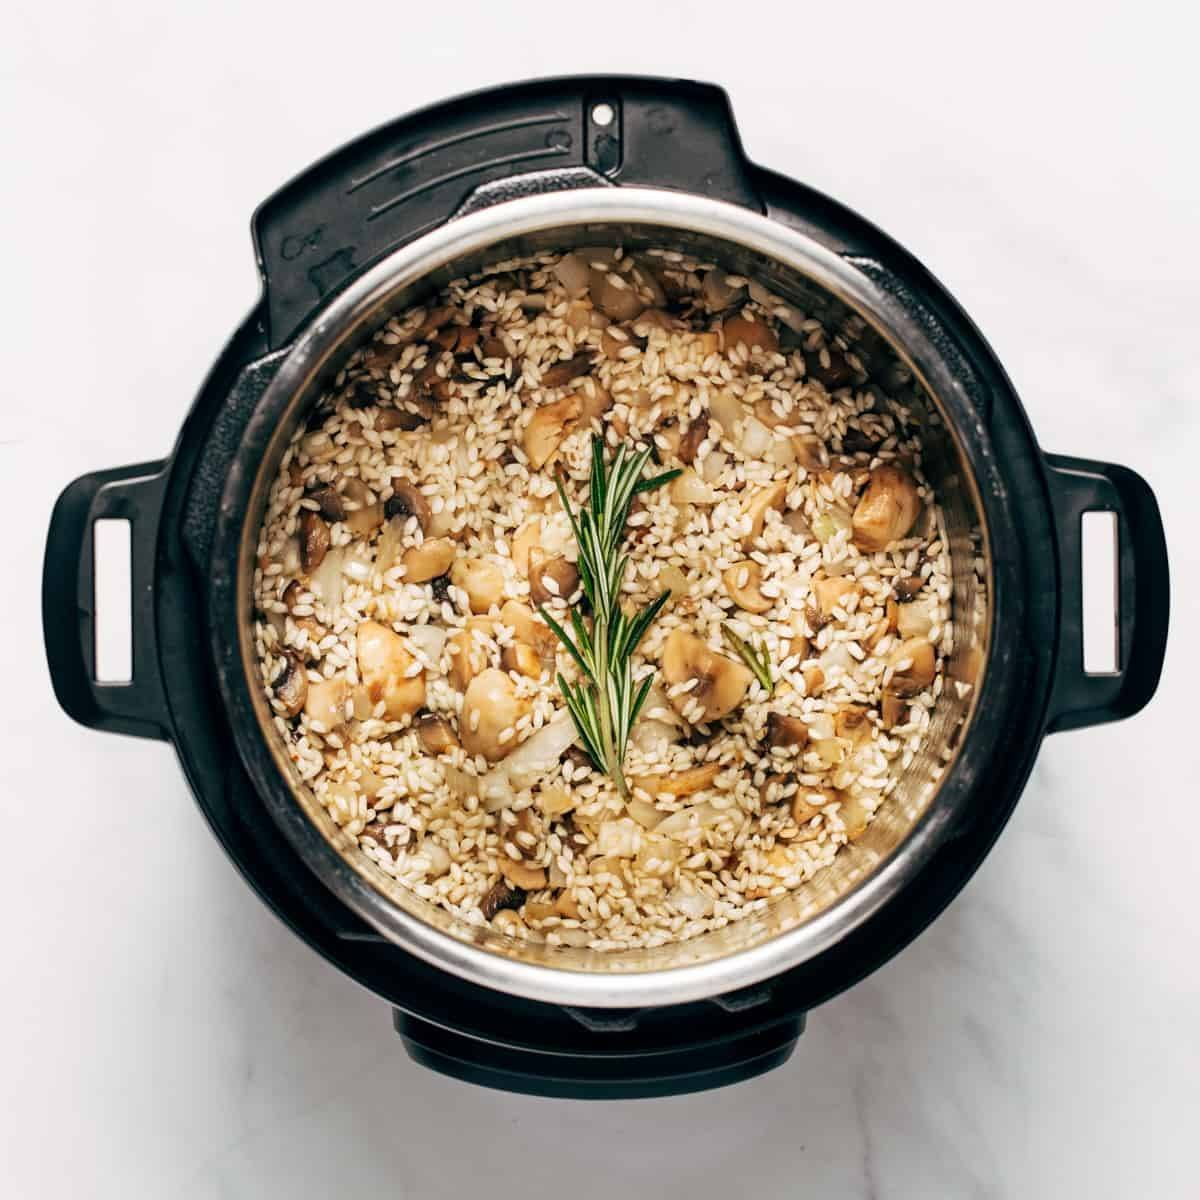 Risotto ingredients in an instant pot